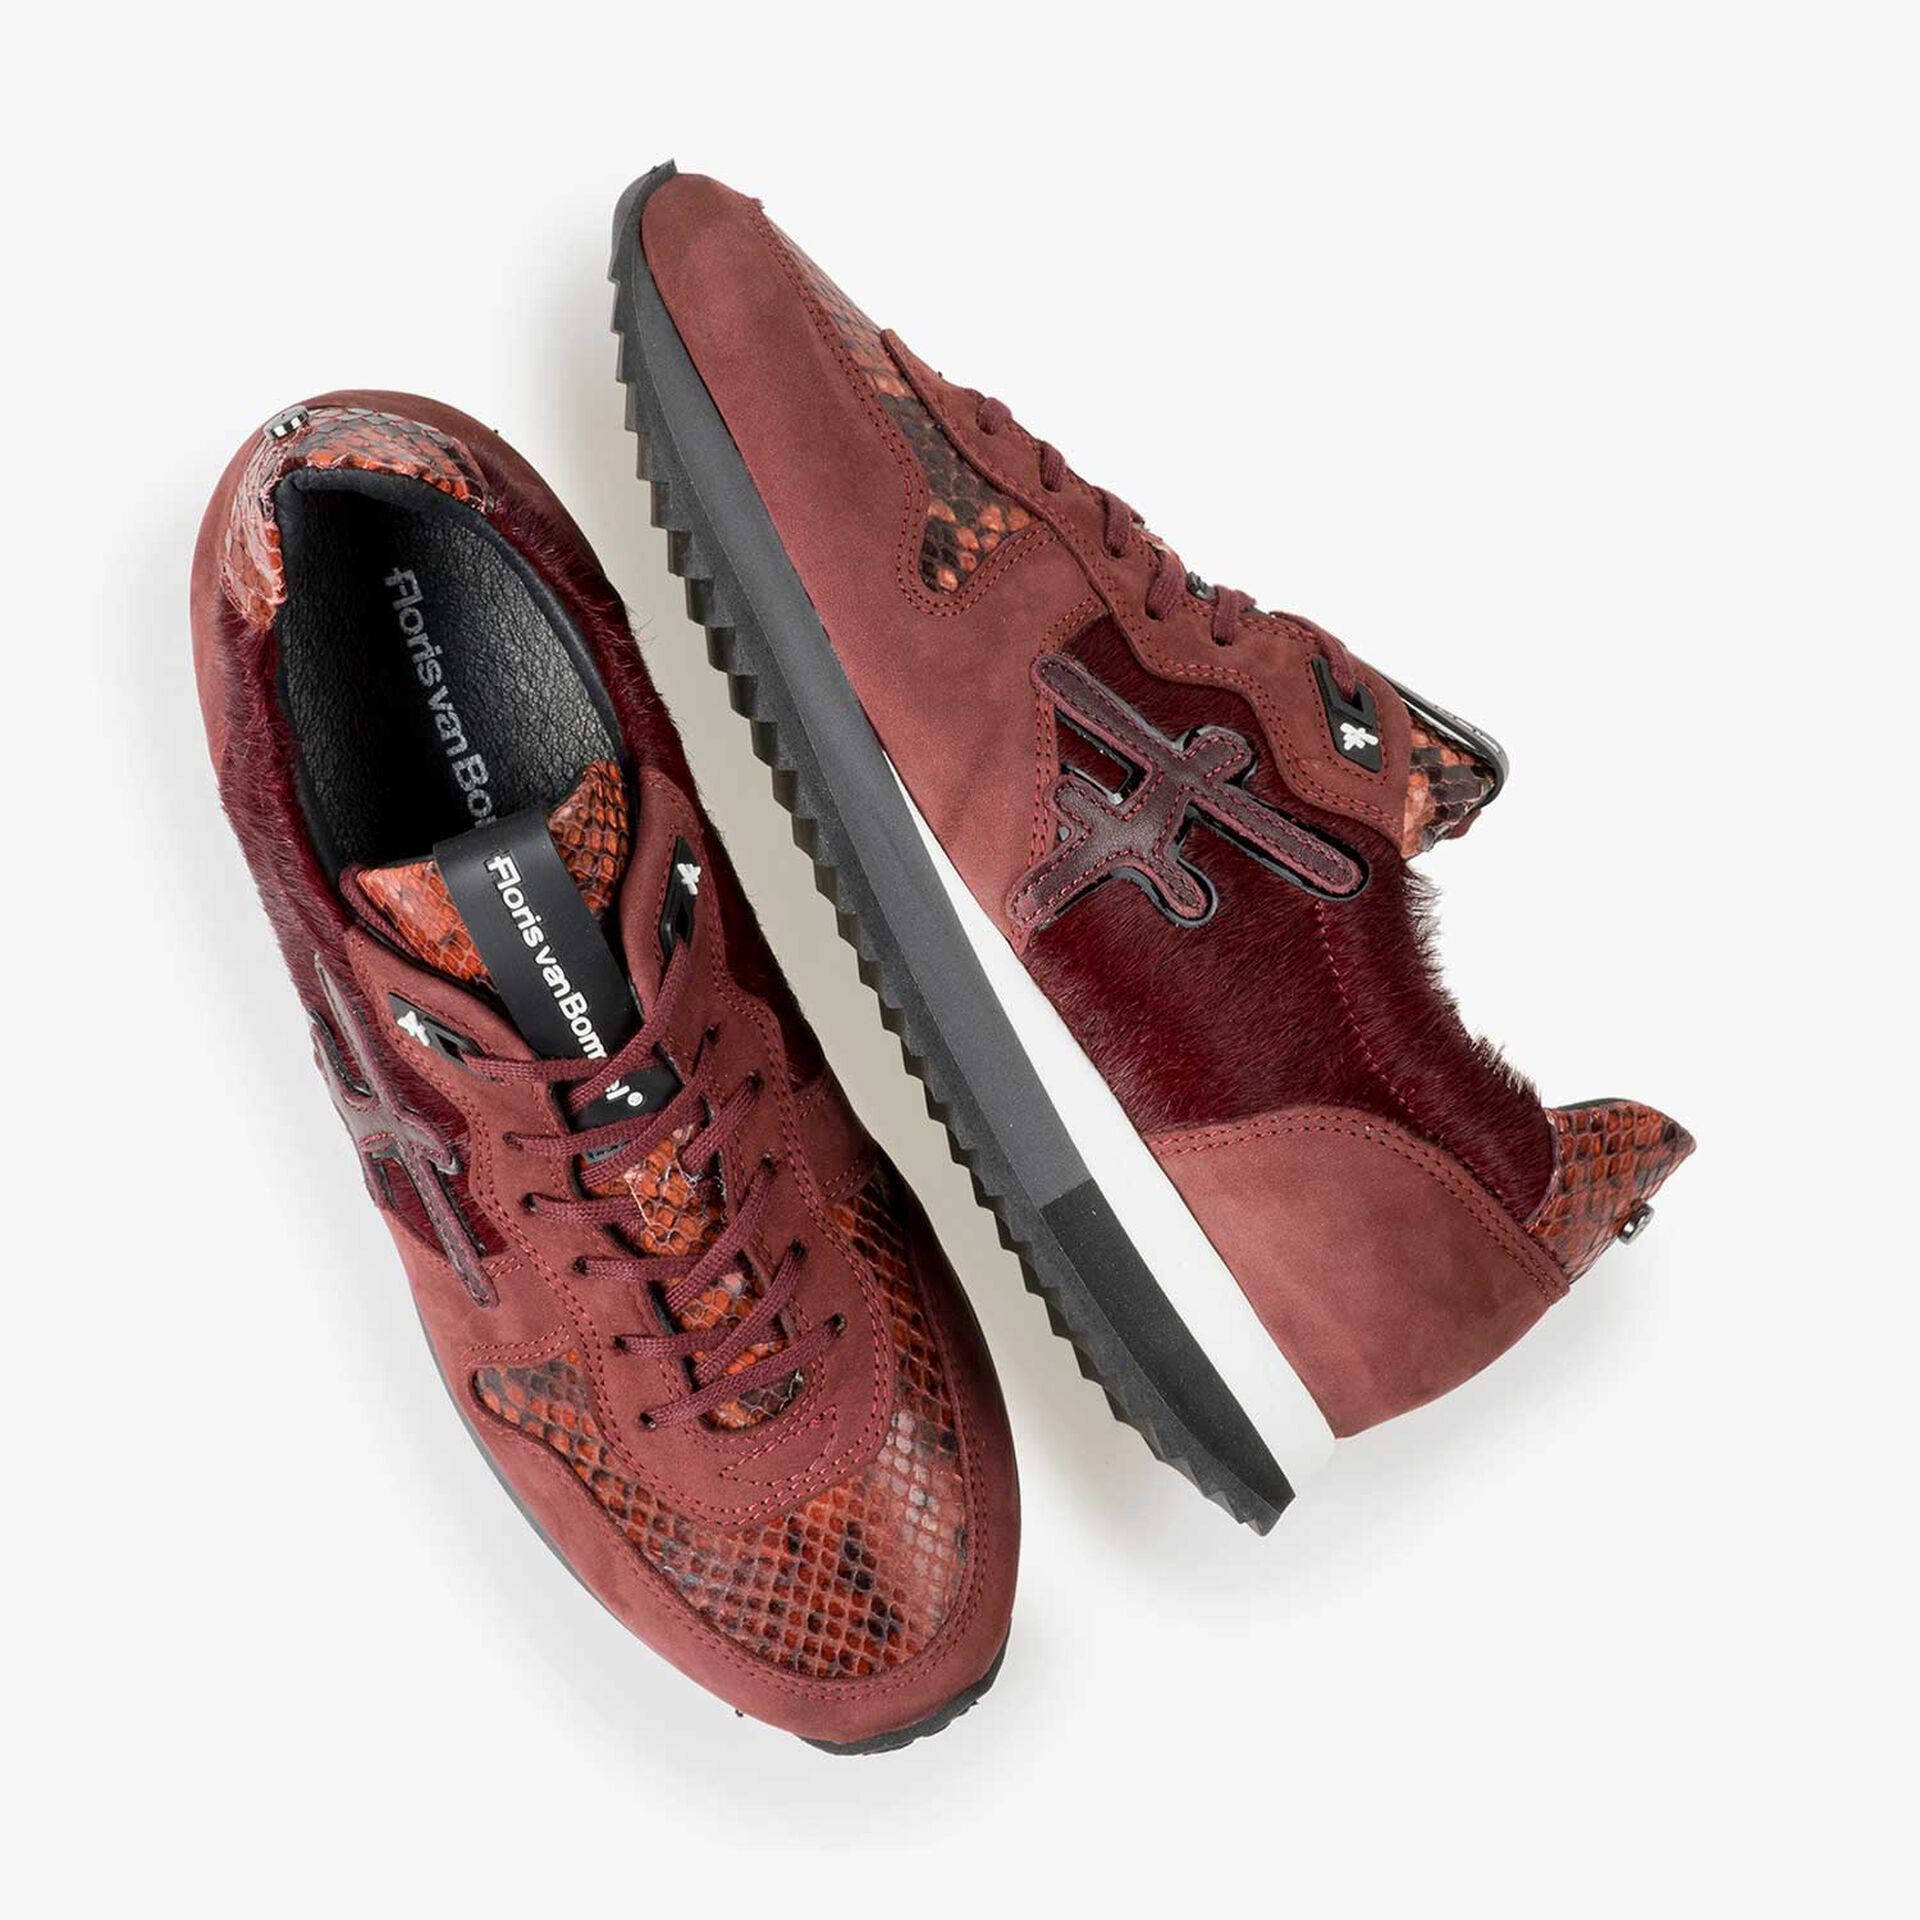 Bodeaux red leather sneaker with pony hair